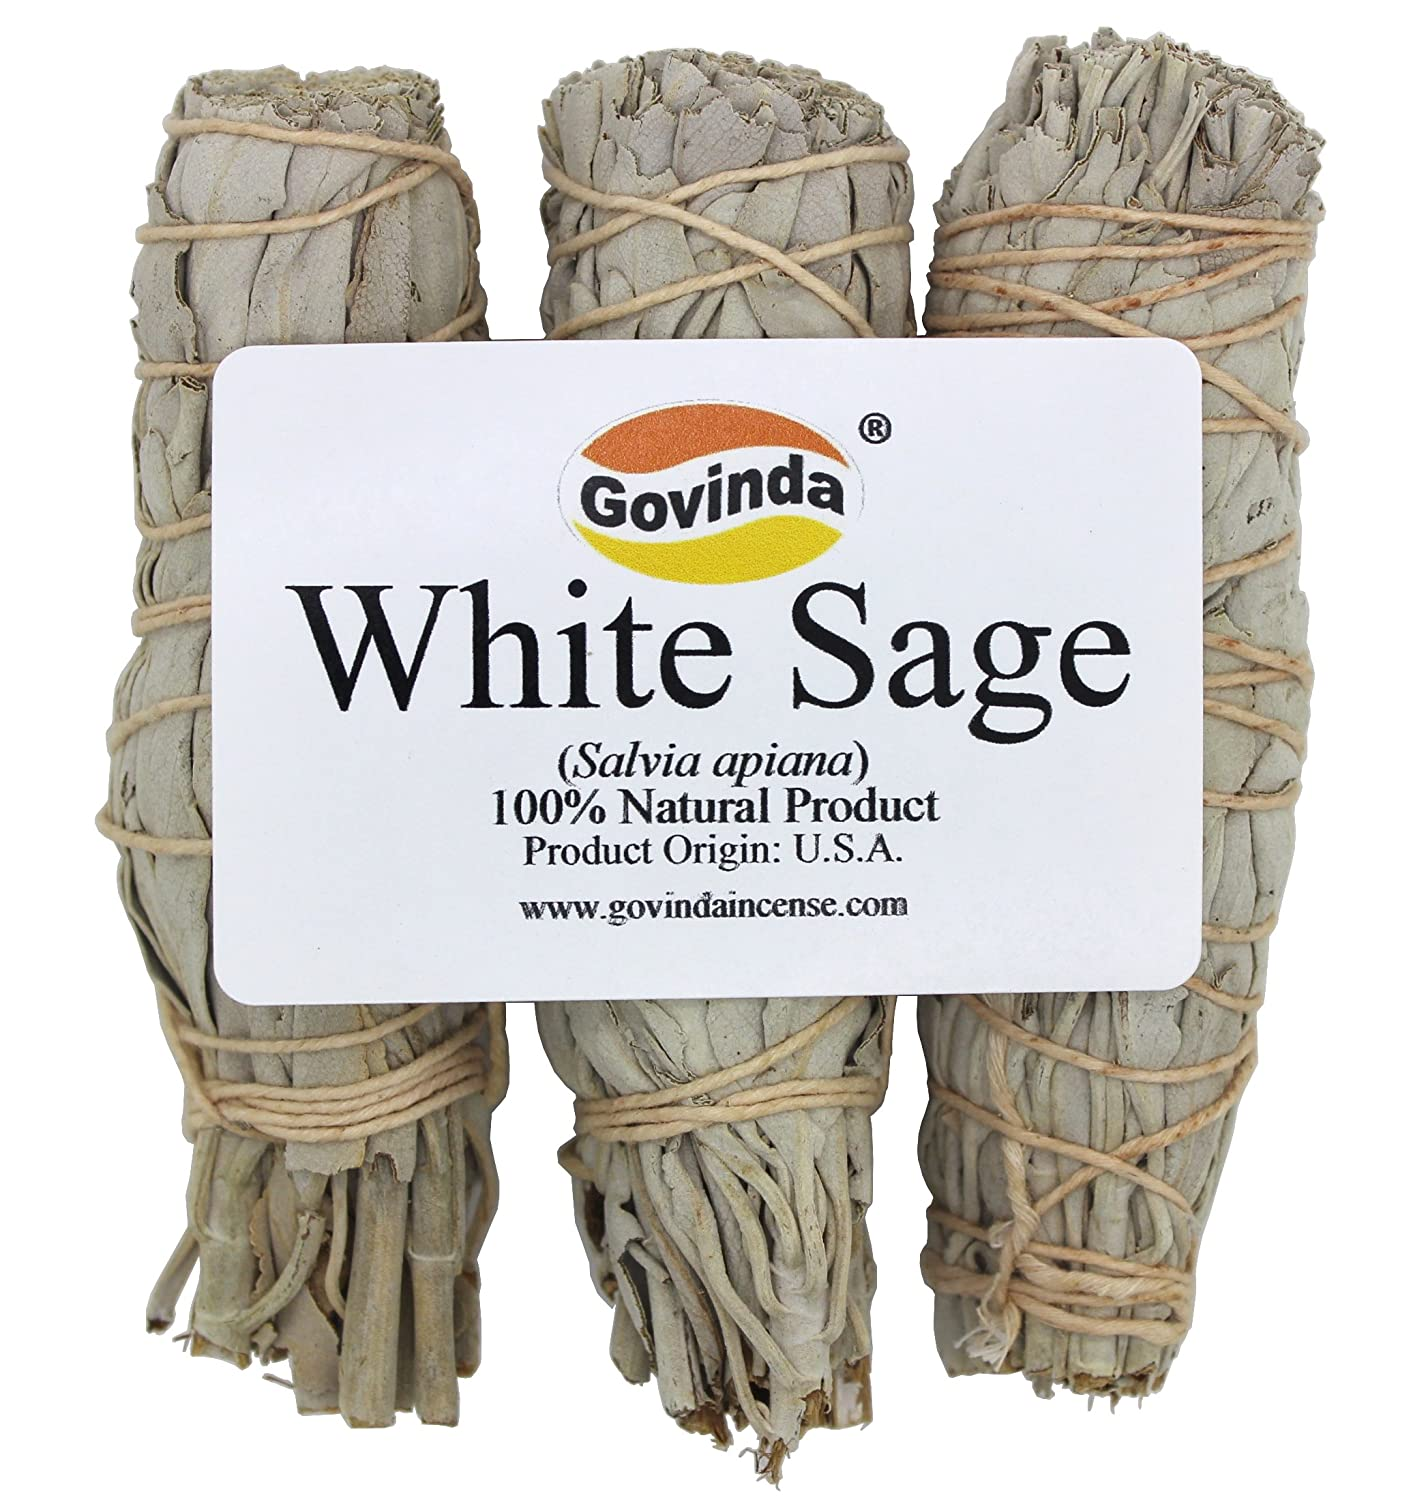 Govinda Premium California White Sage Smudge Sticks, 4 Inch Long, Pack of 3 Govinda®